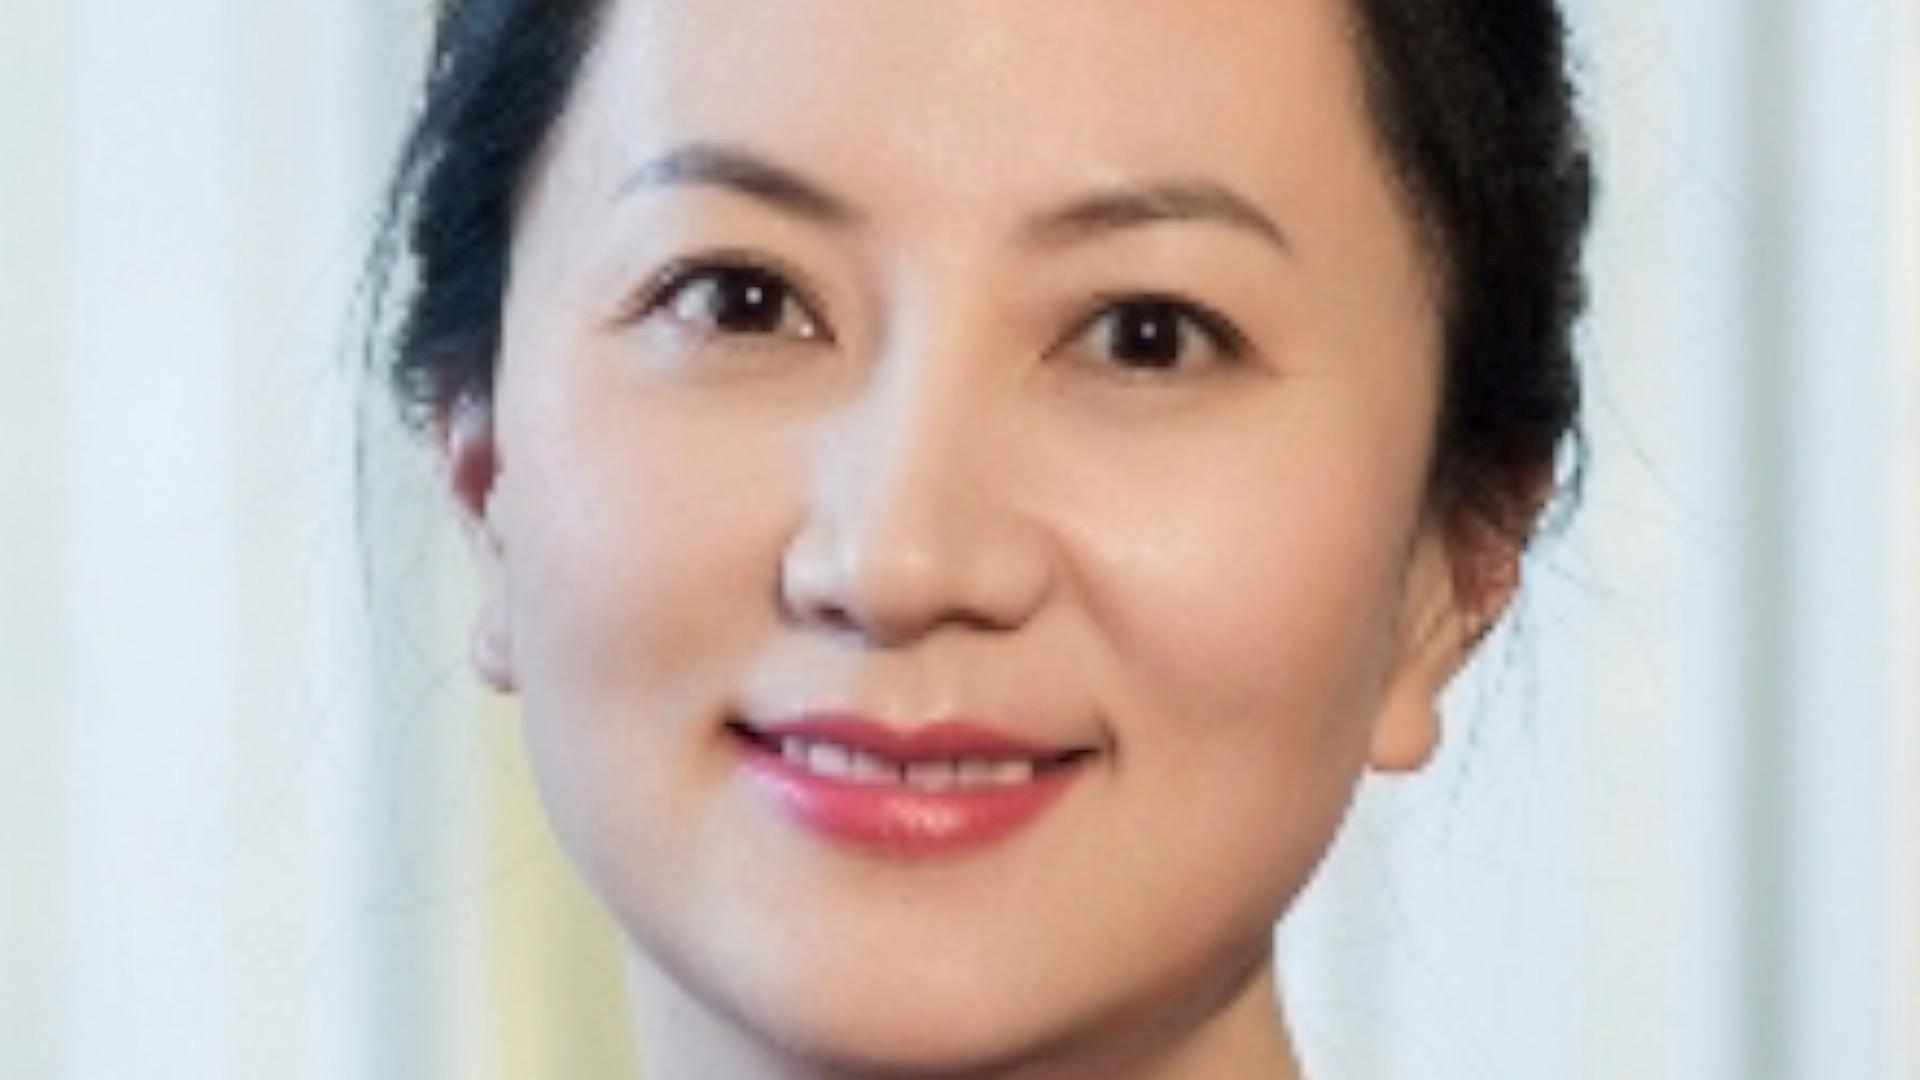 National News - Canadian Judge Spells Out Bail Conditions For Huawei Executive